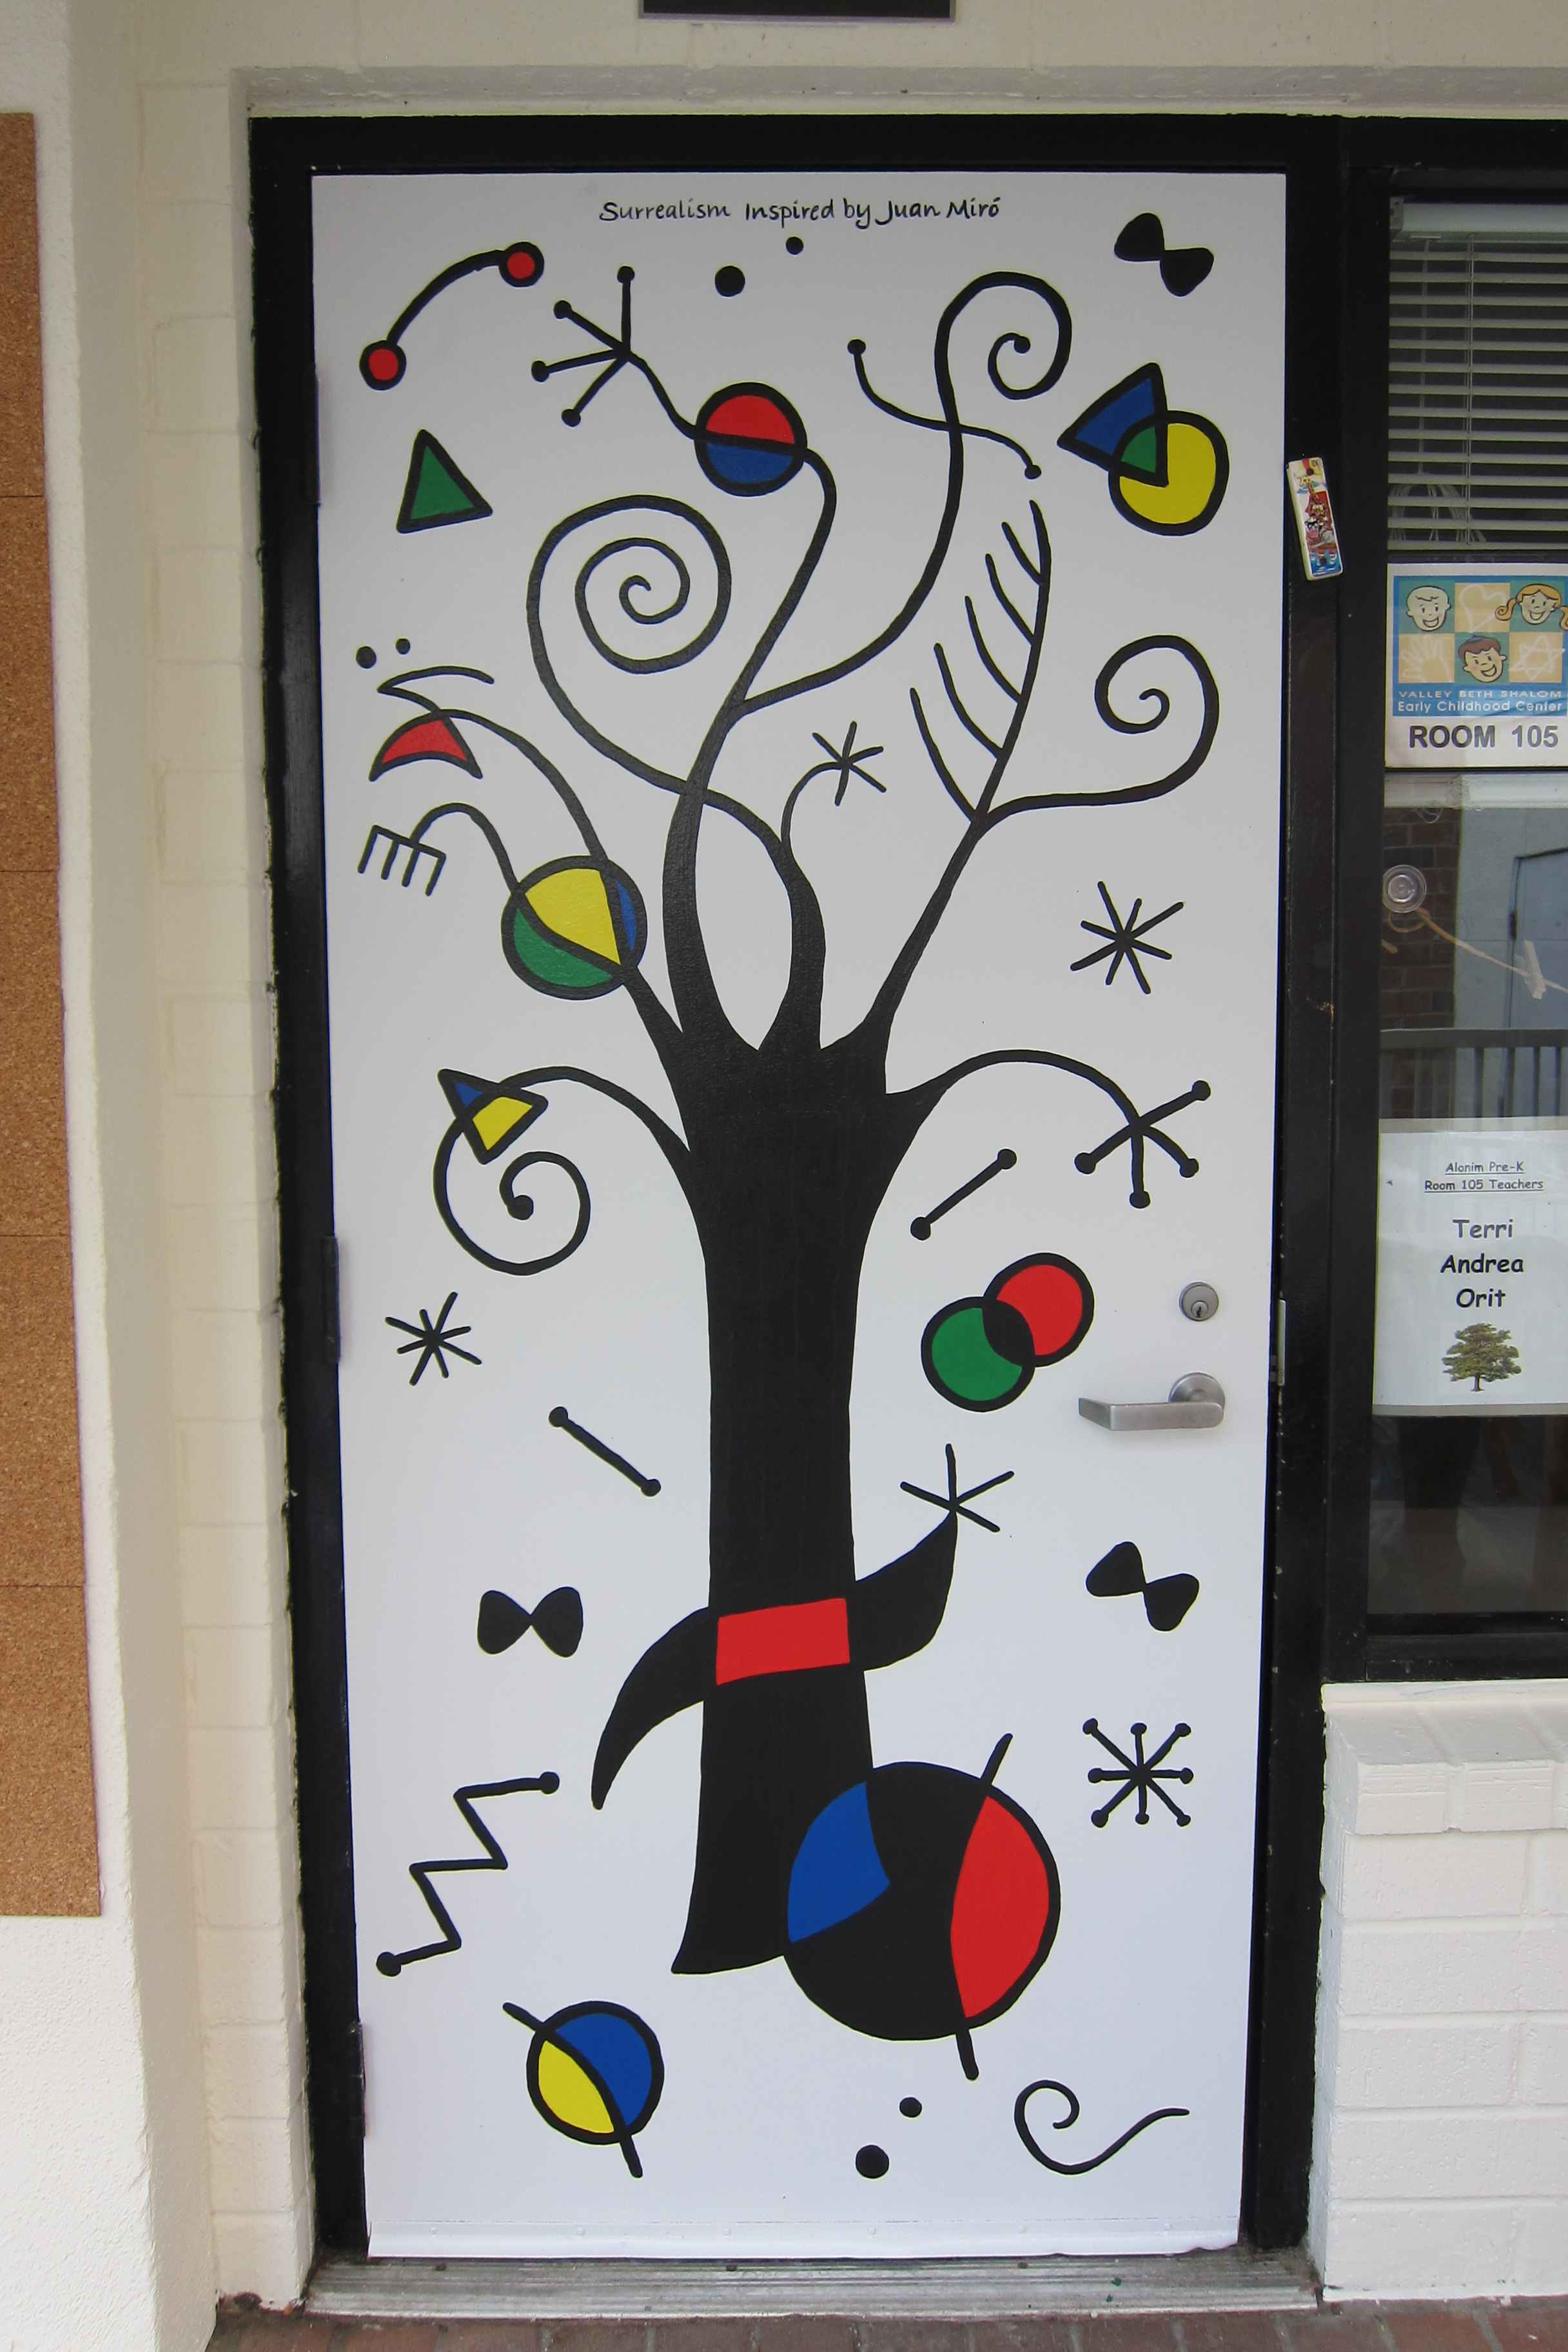 Surrealism Inspired by Miro